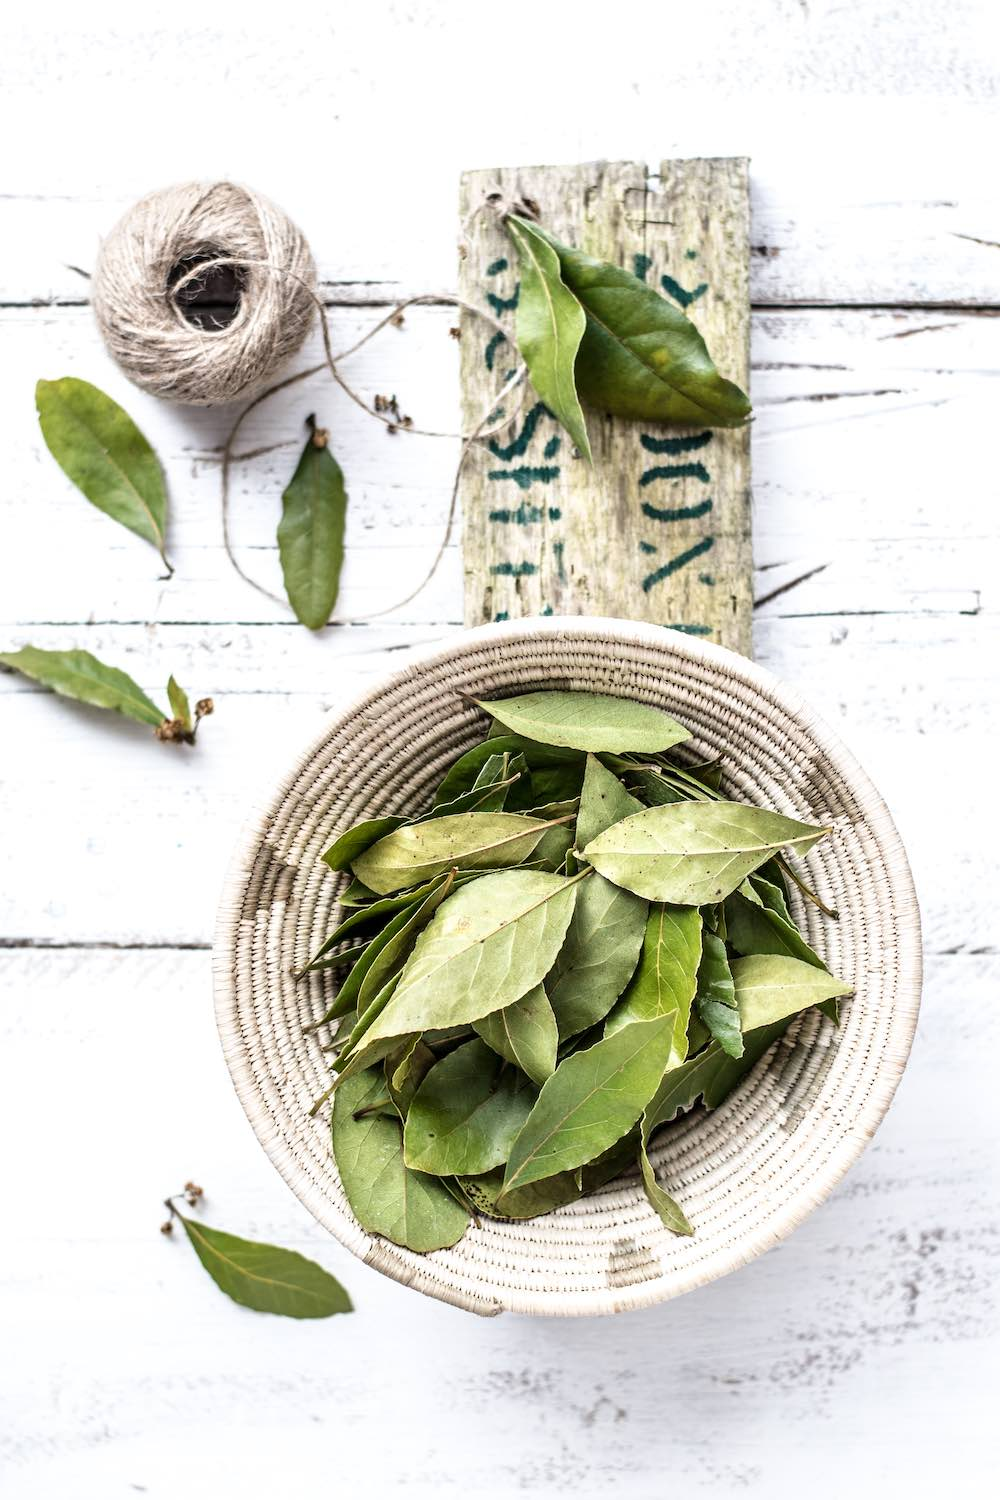 Dried bay leaves in a woven basket